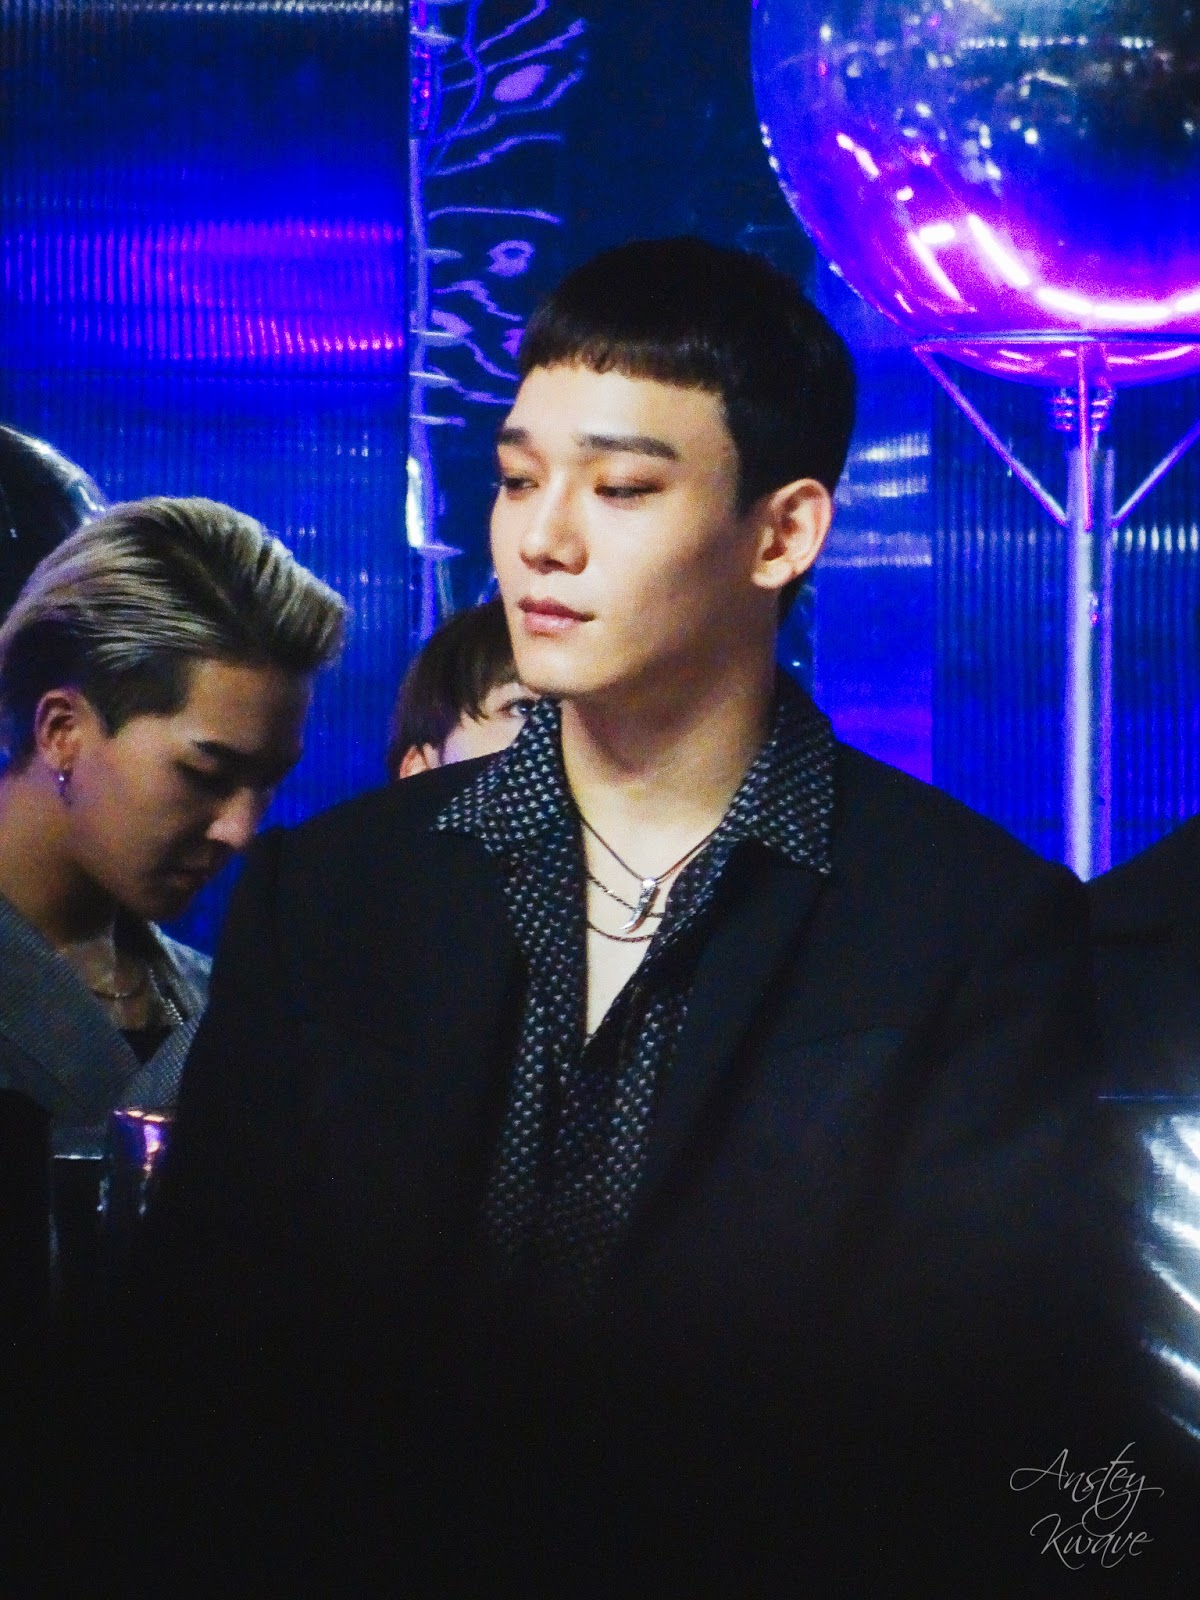 Chen, member of famous Korean k-pop boy band at Melon Music Awards (MMA) 2017 in Seoul, South Korea